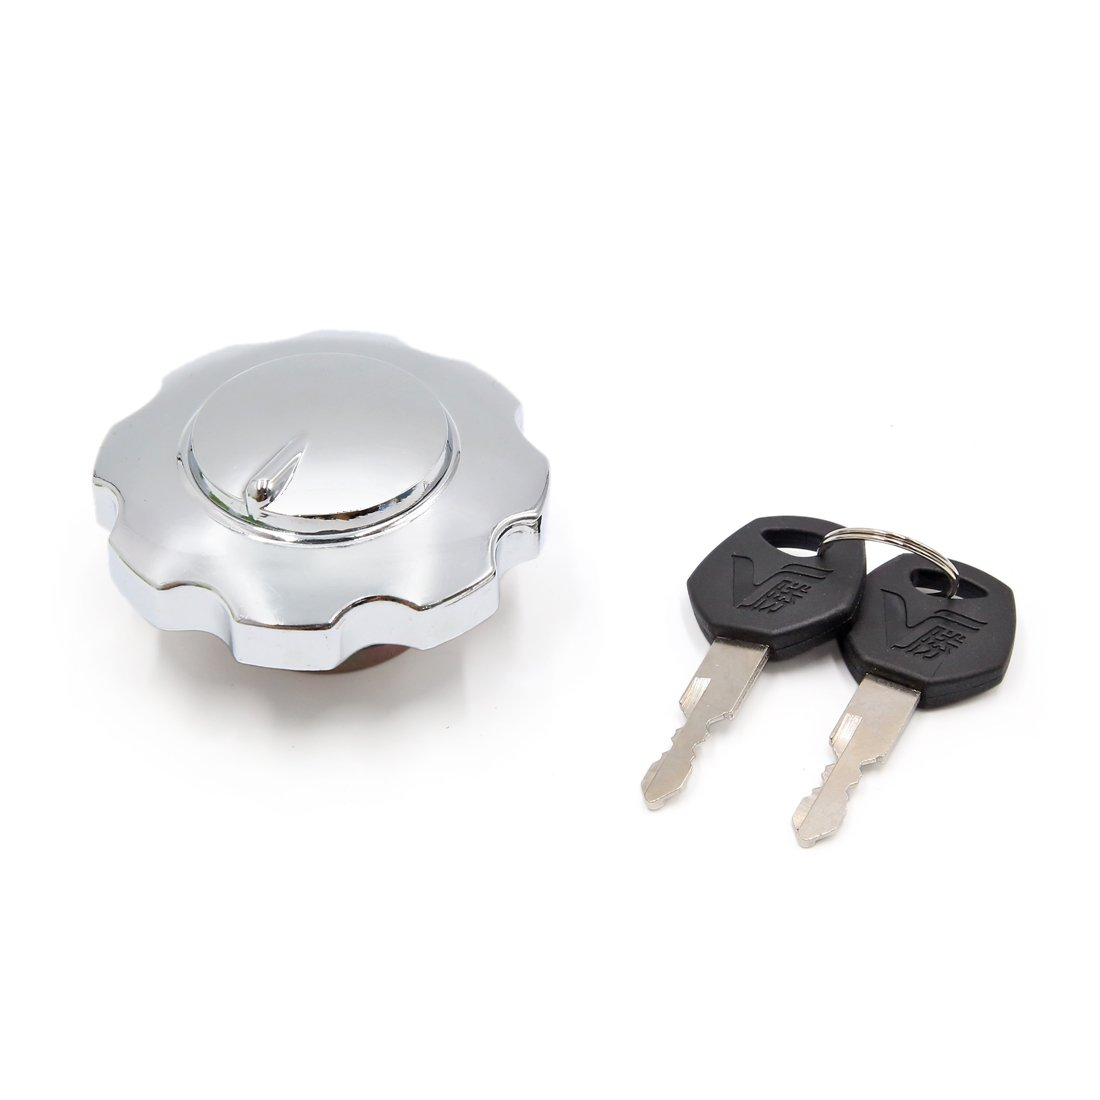 sourcingmap Silver Tone Metal Oil Fuel Tank Gas Cap Lock Cover w 2 Keys a17030300ux1427